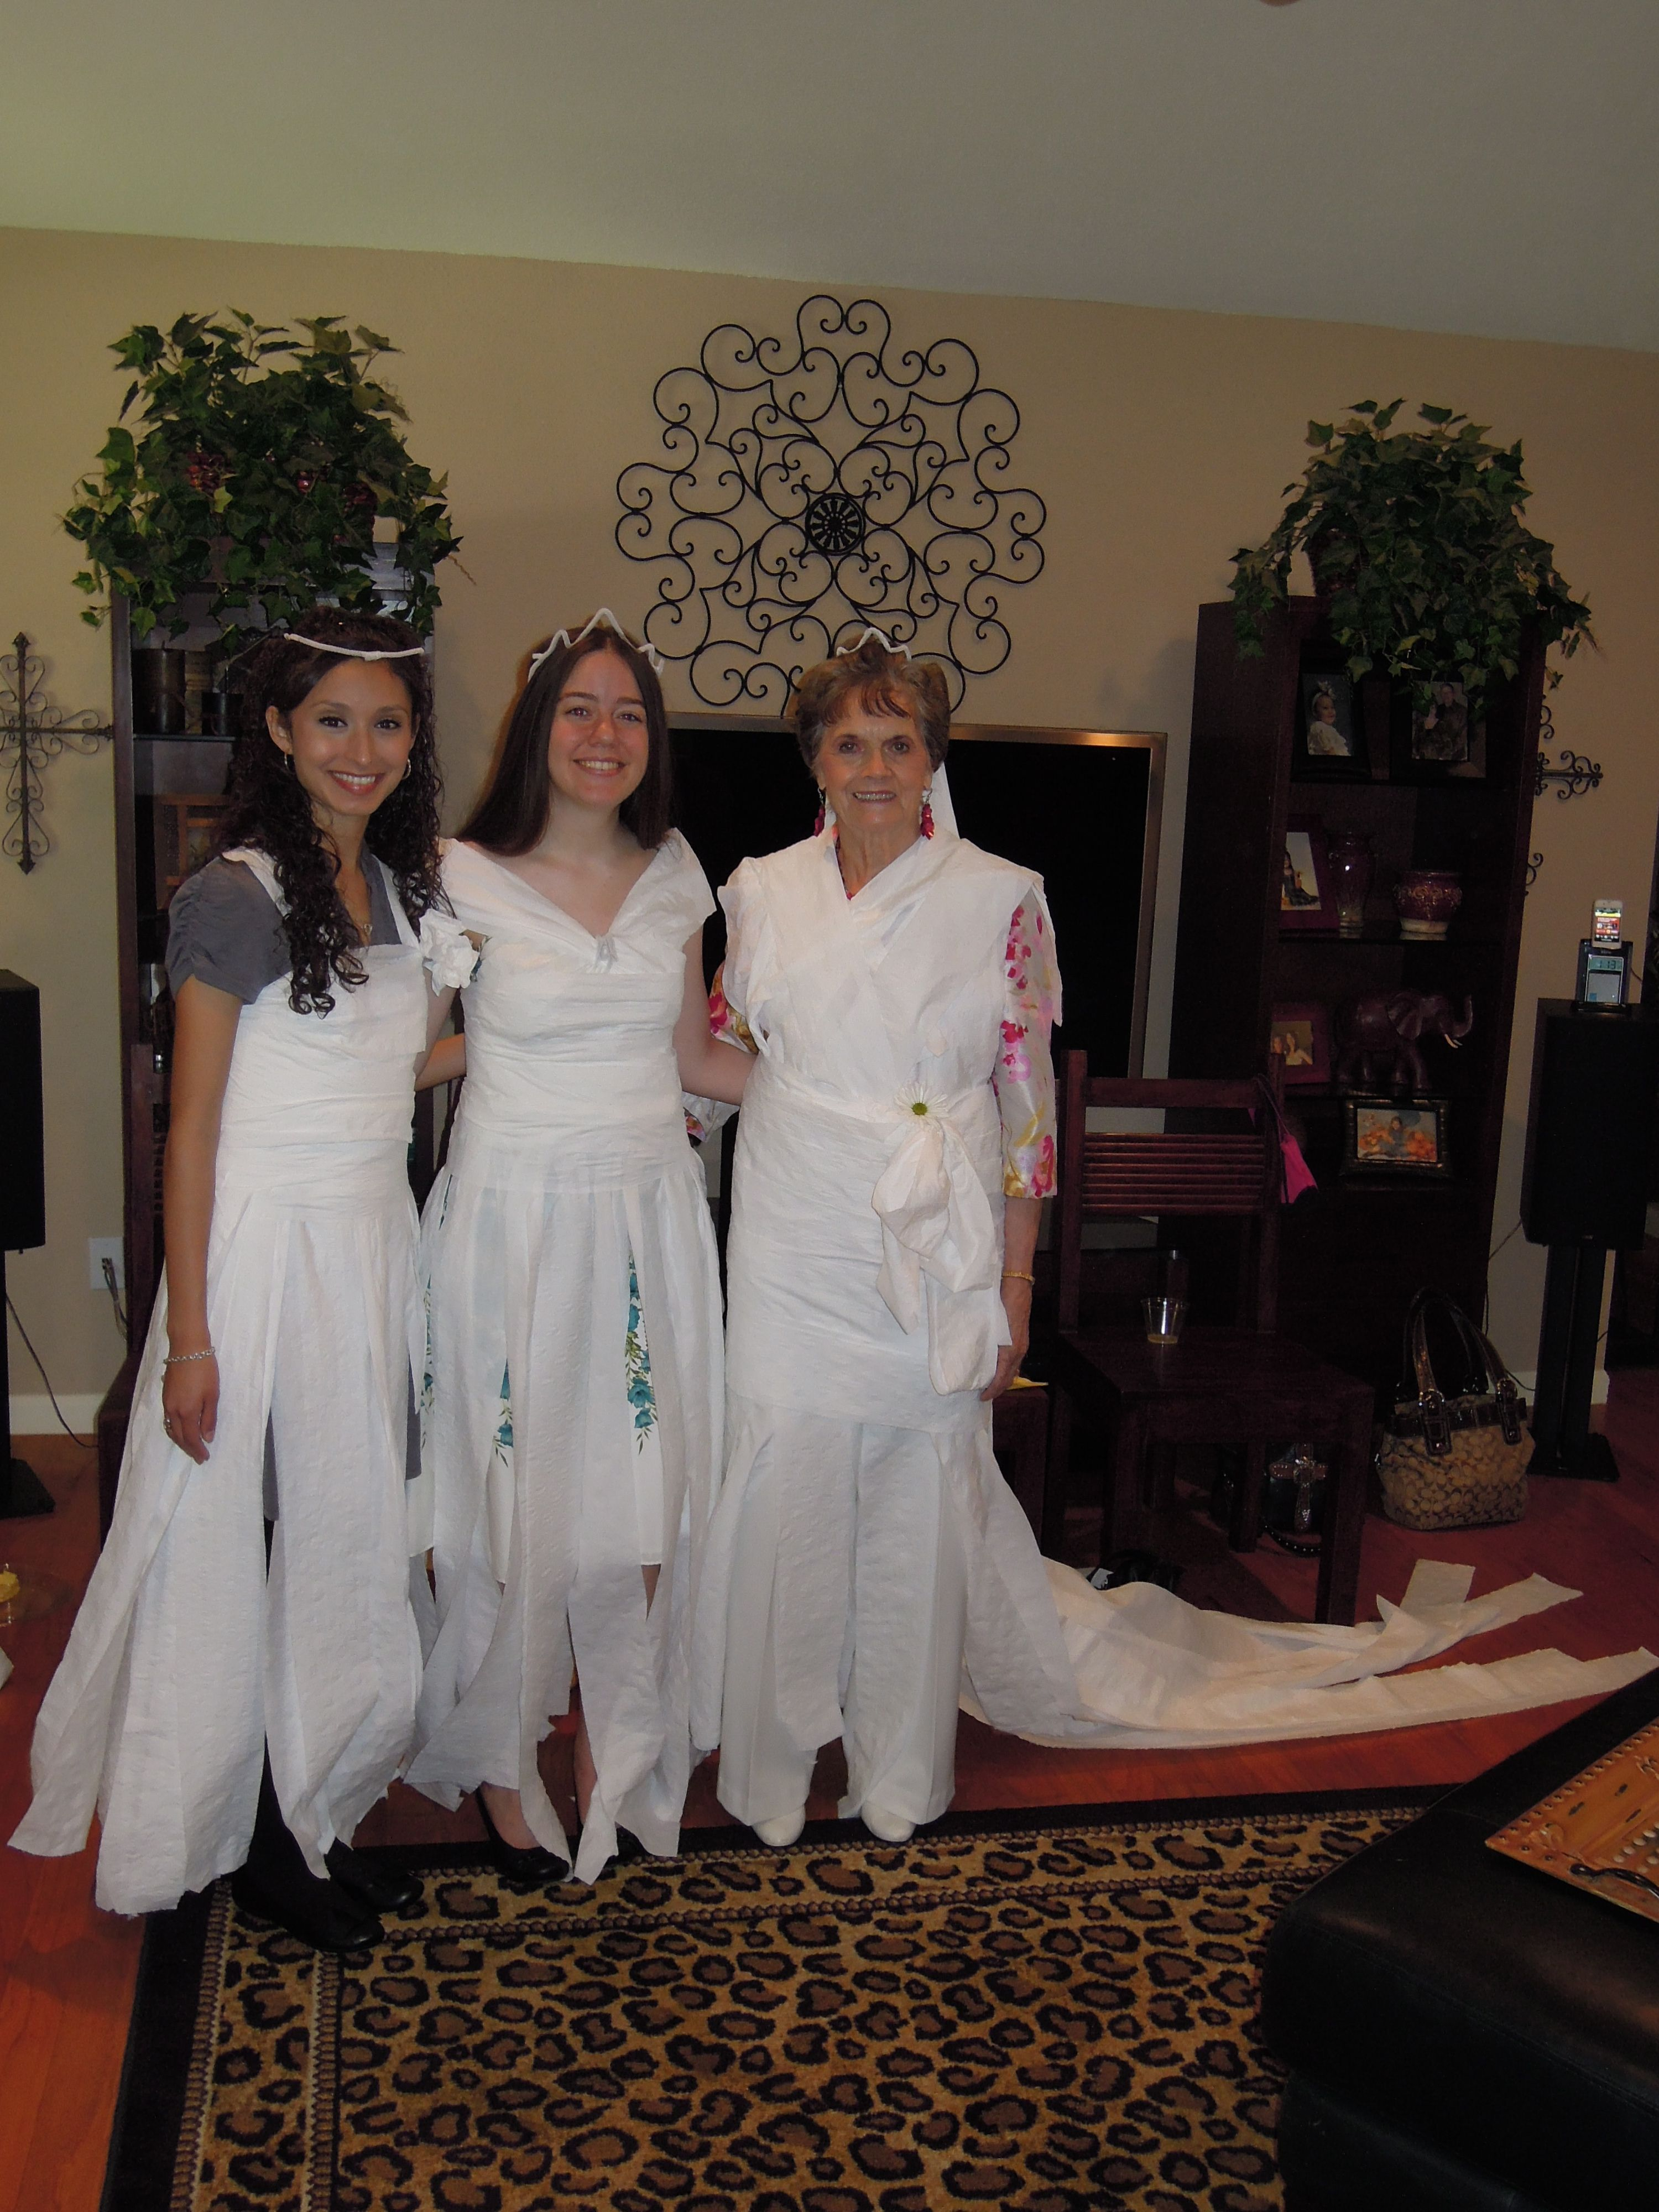 typical bridal shower game idea create a wedding gown with toilet paper team who creates best dress wins small prize